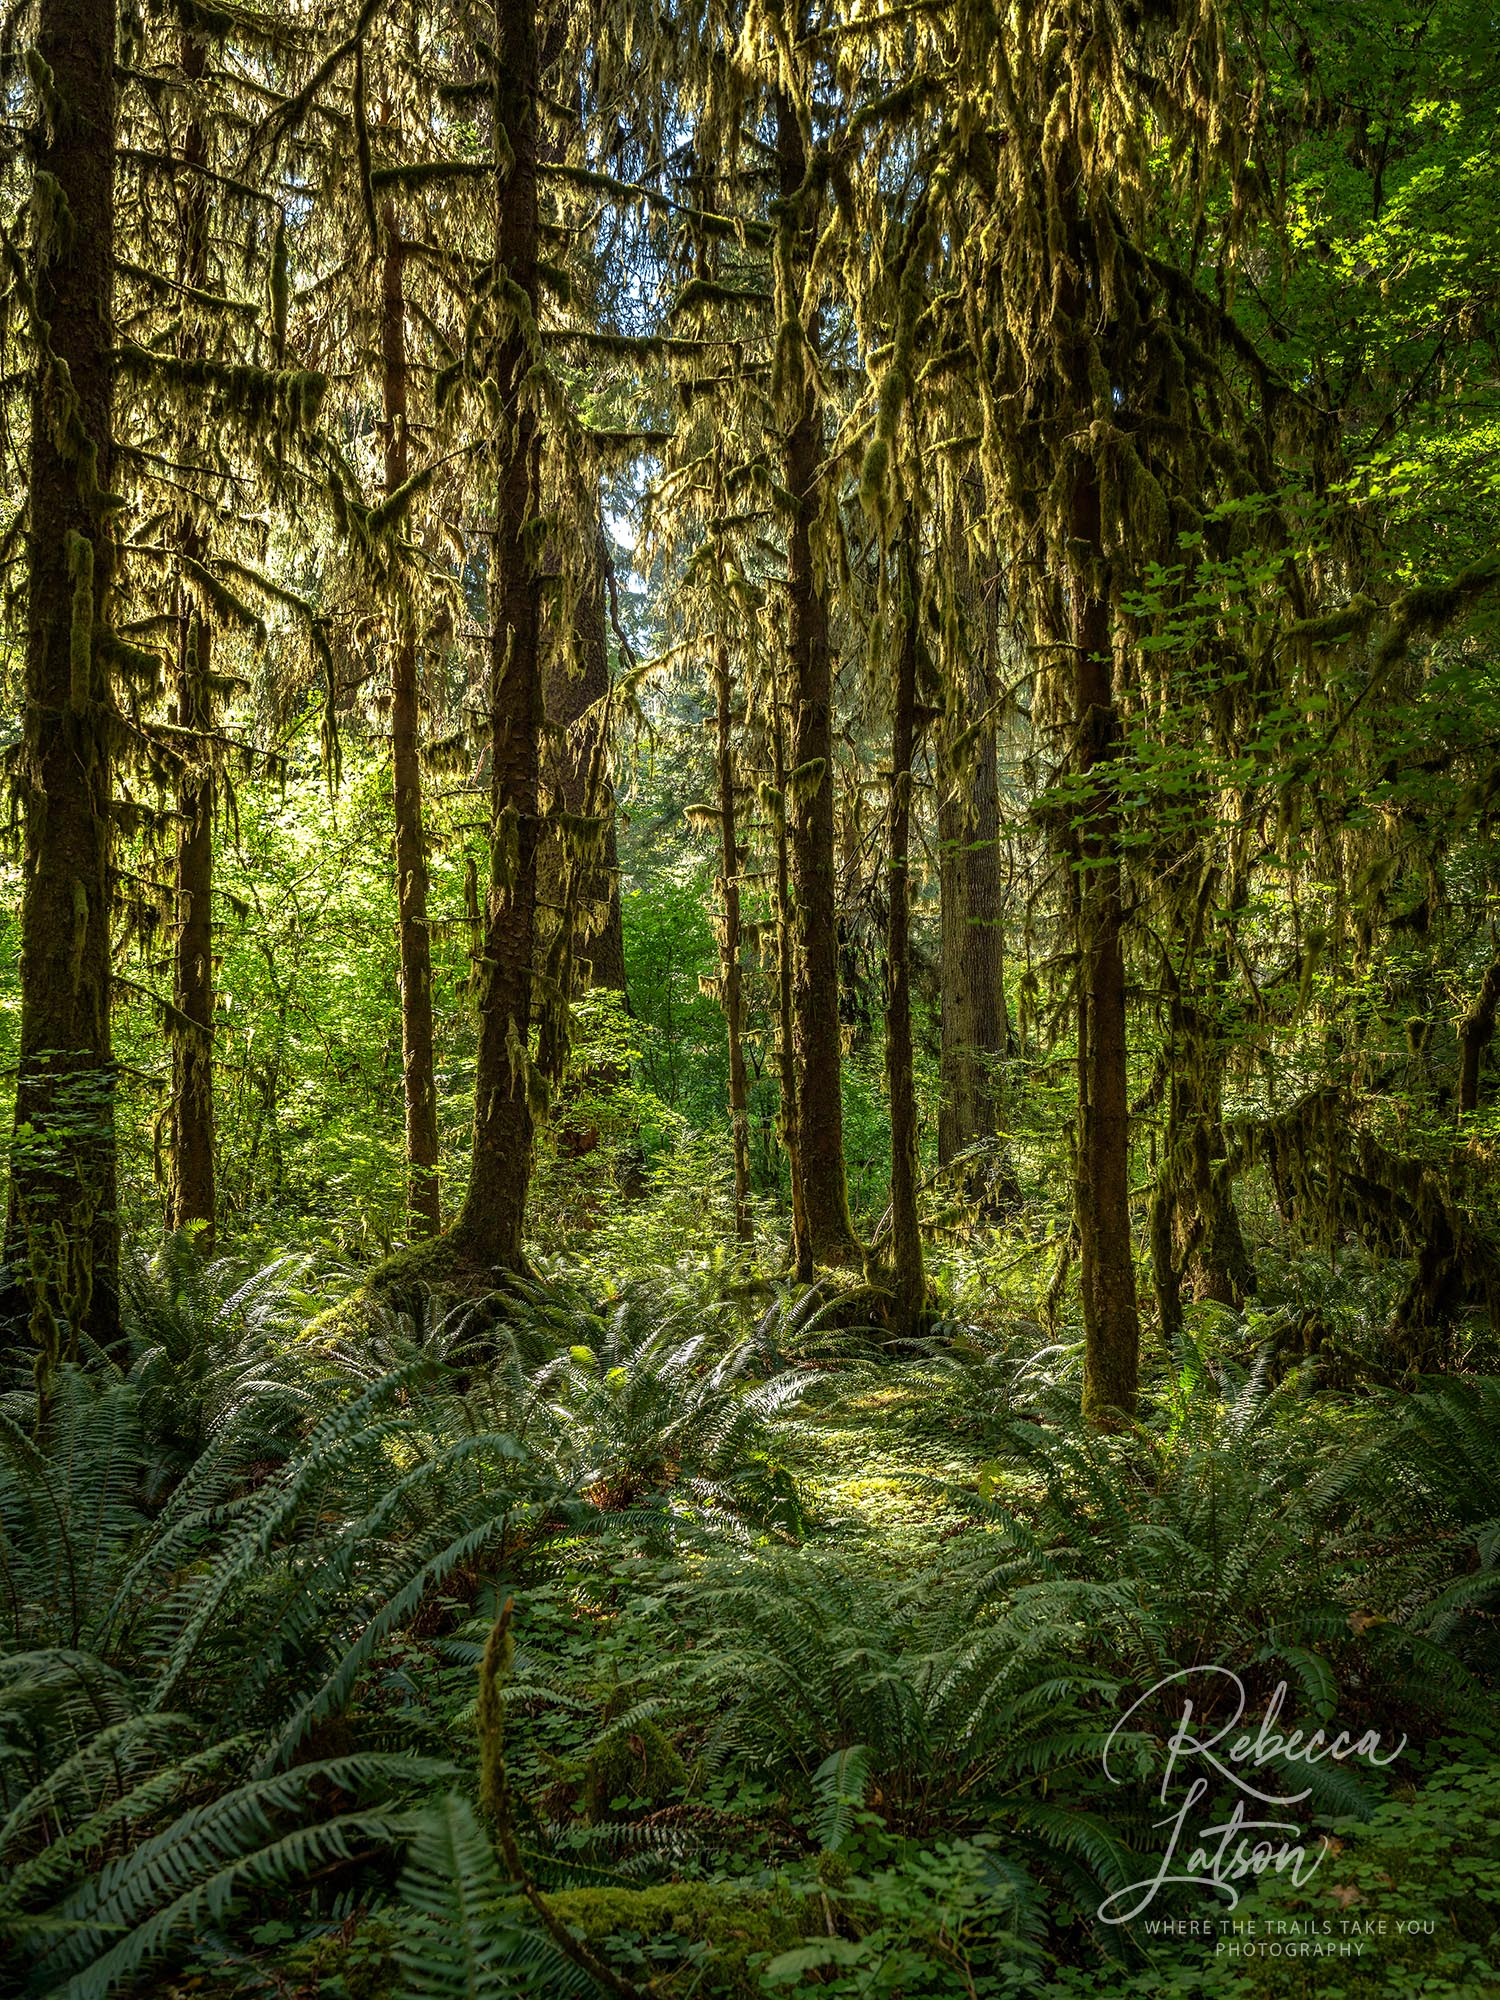 Hoh Rainforest Scenery